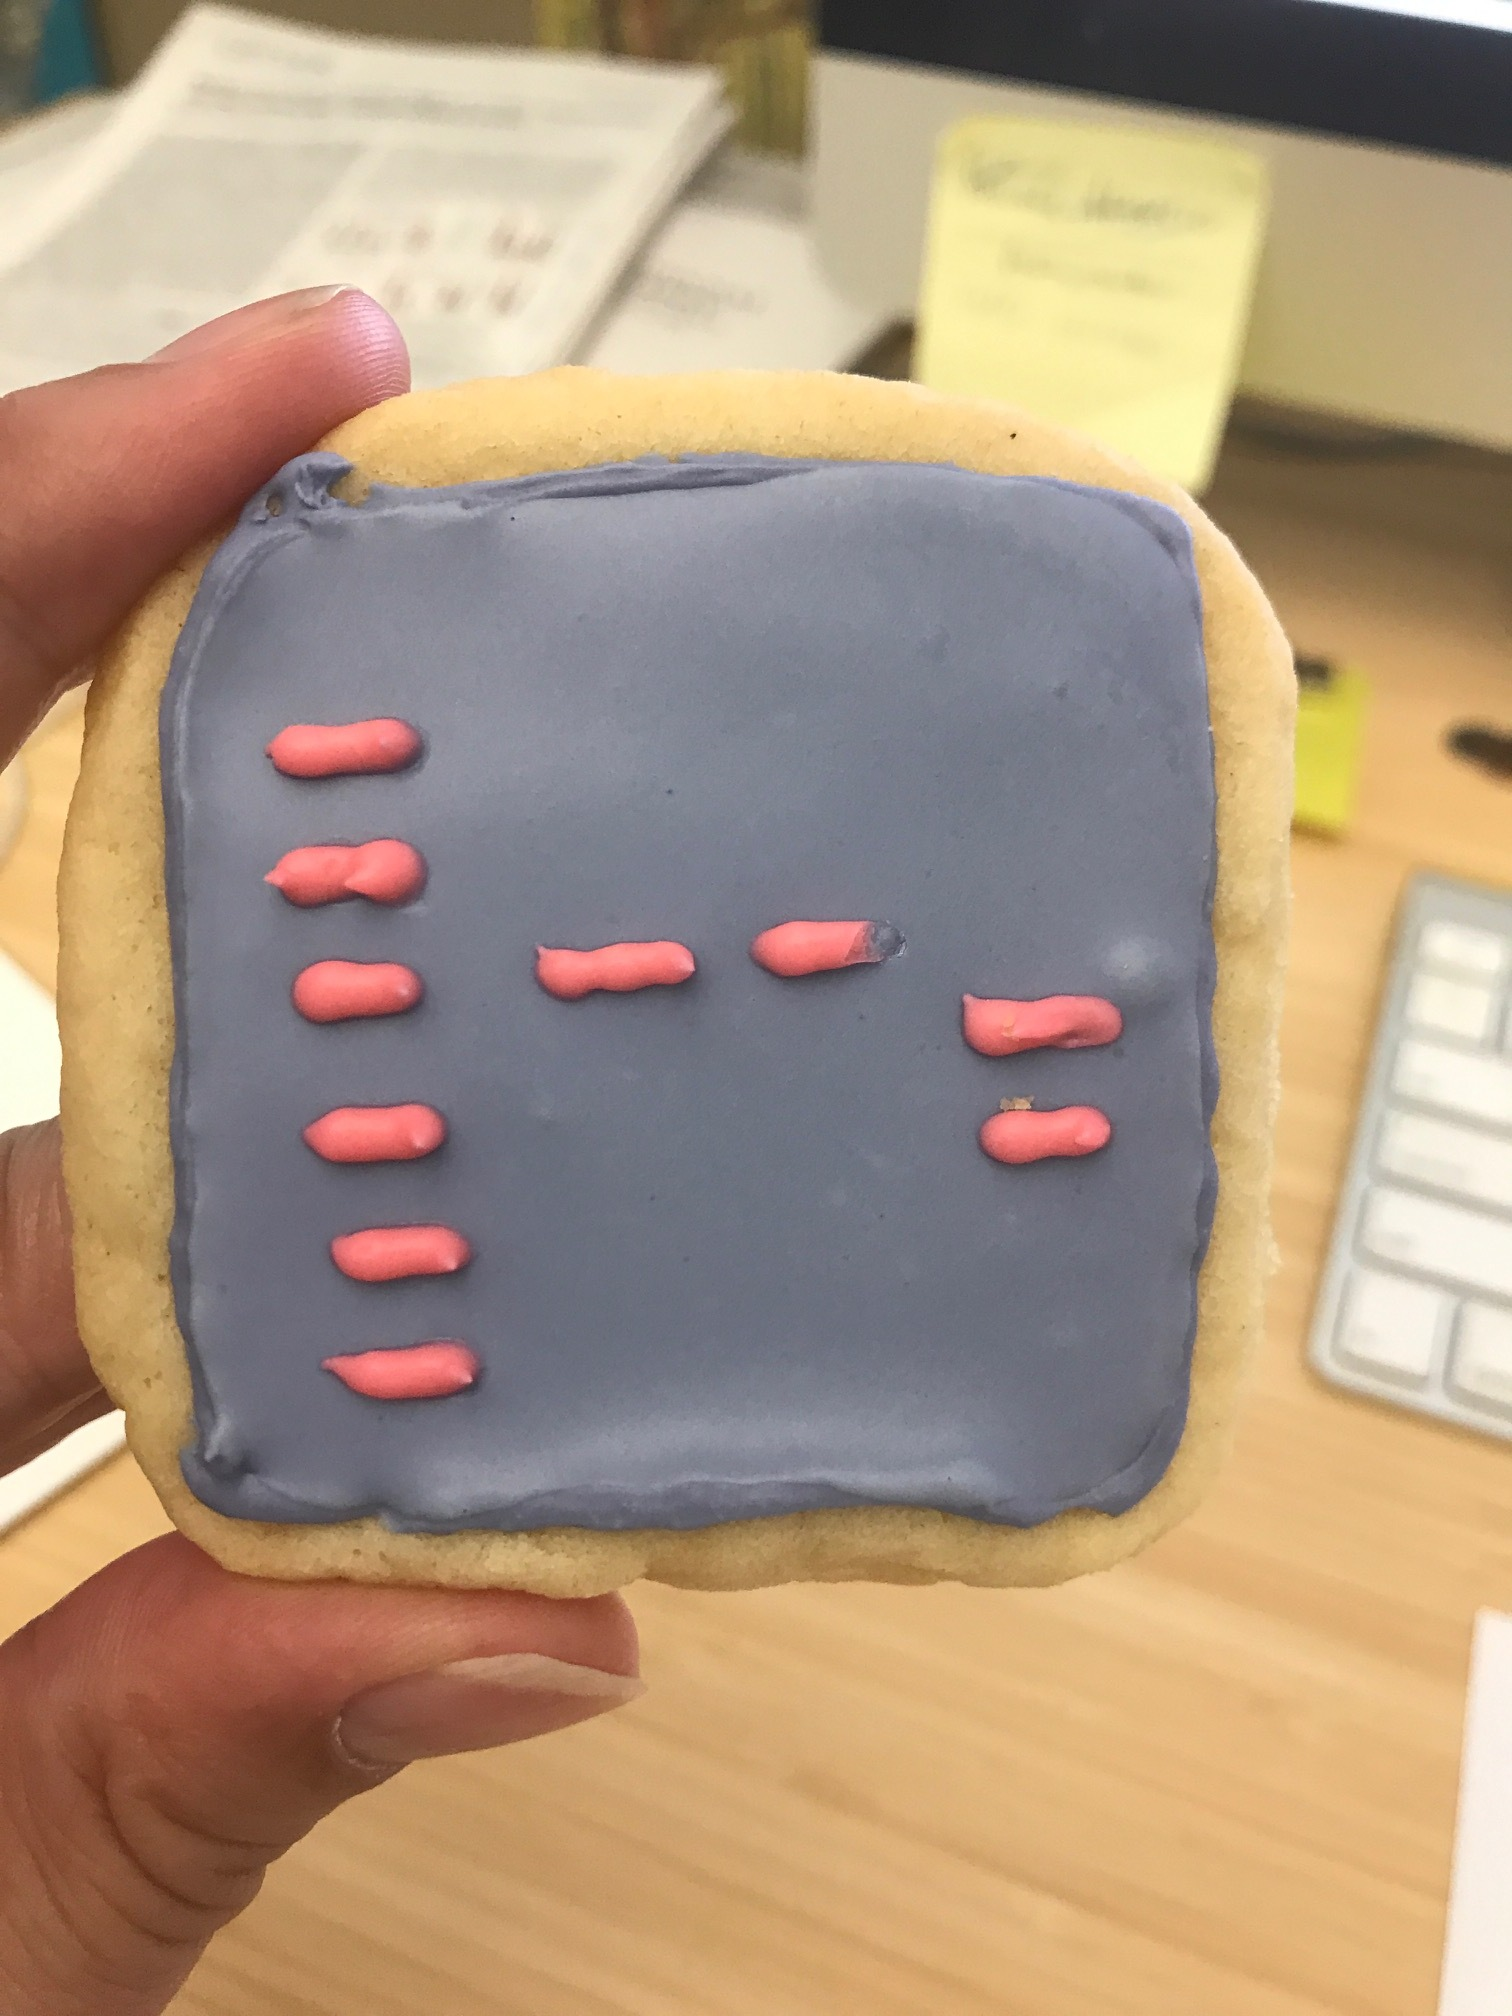 A gel cookie. Sample #3 looks correct. - Spotted in the lab, May 26, 2017